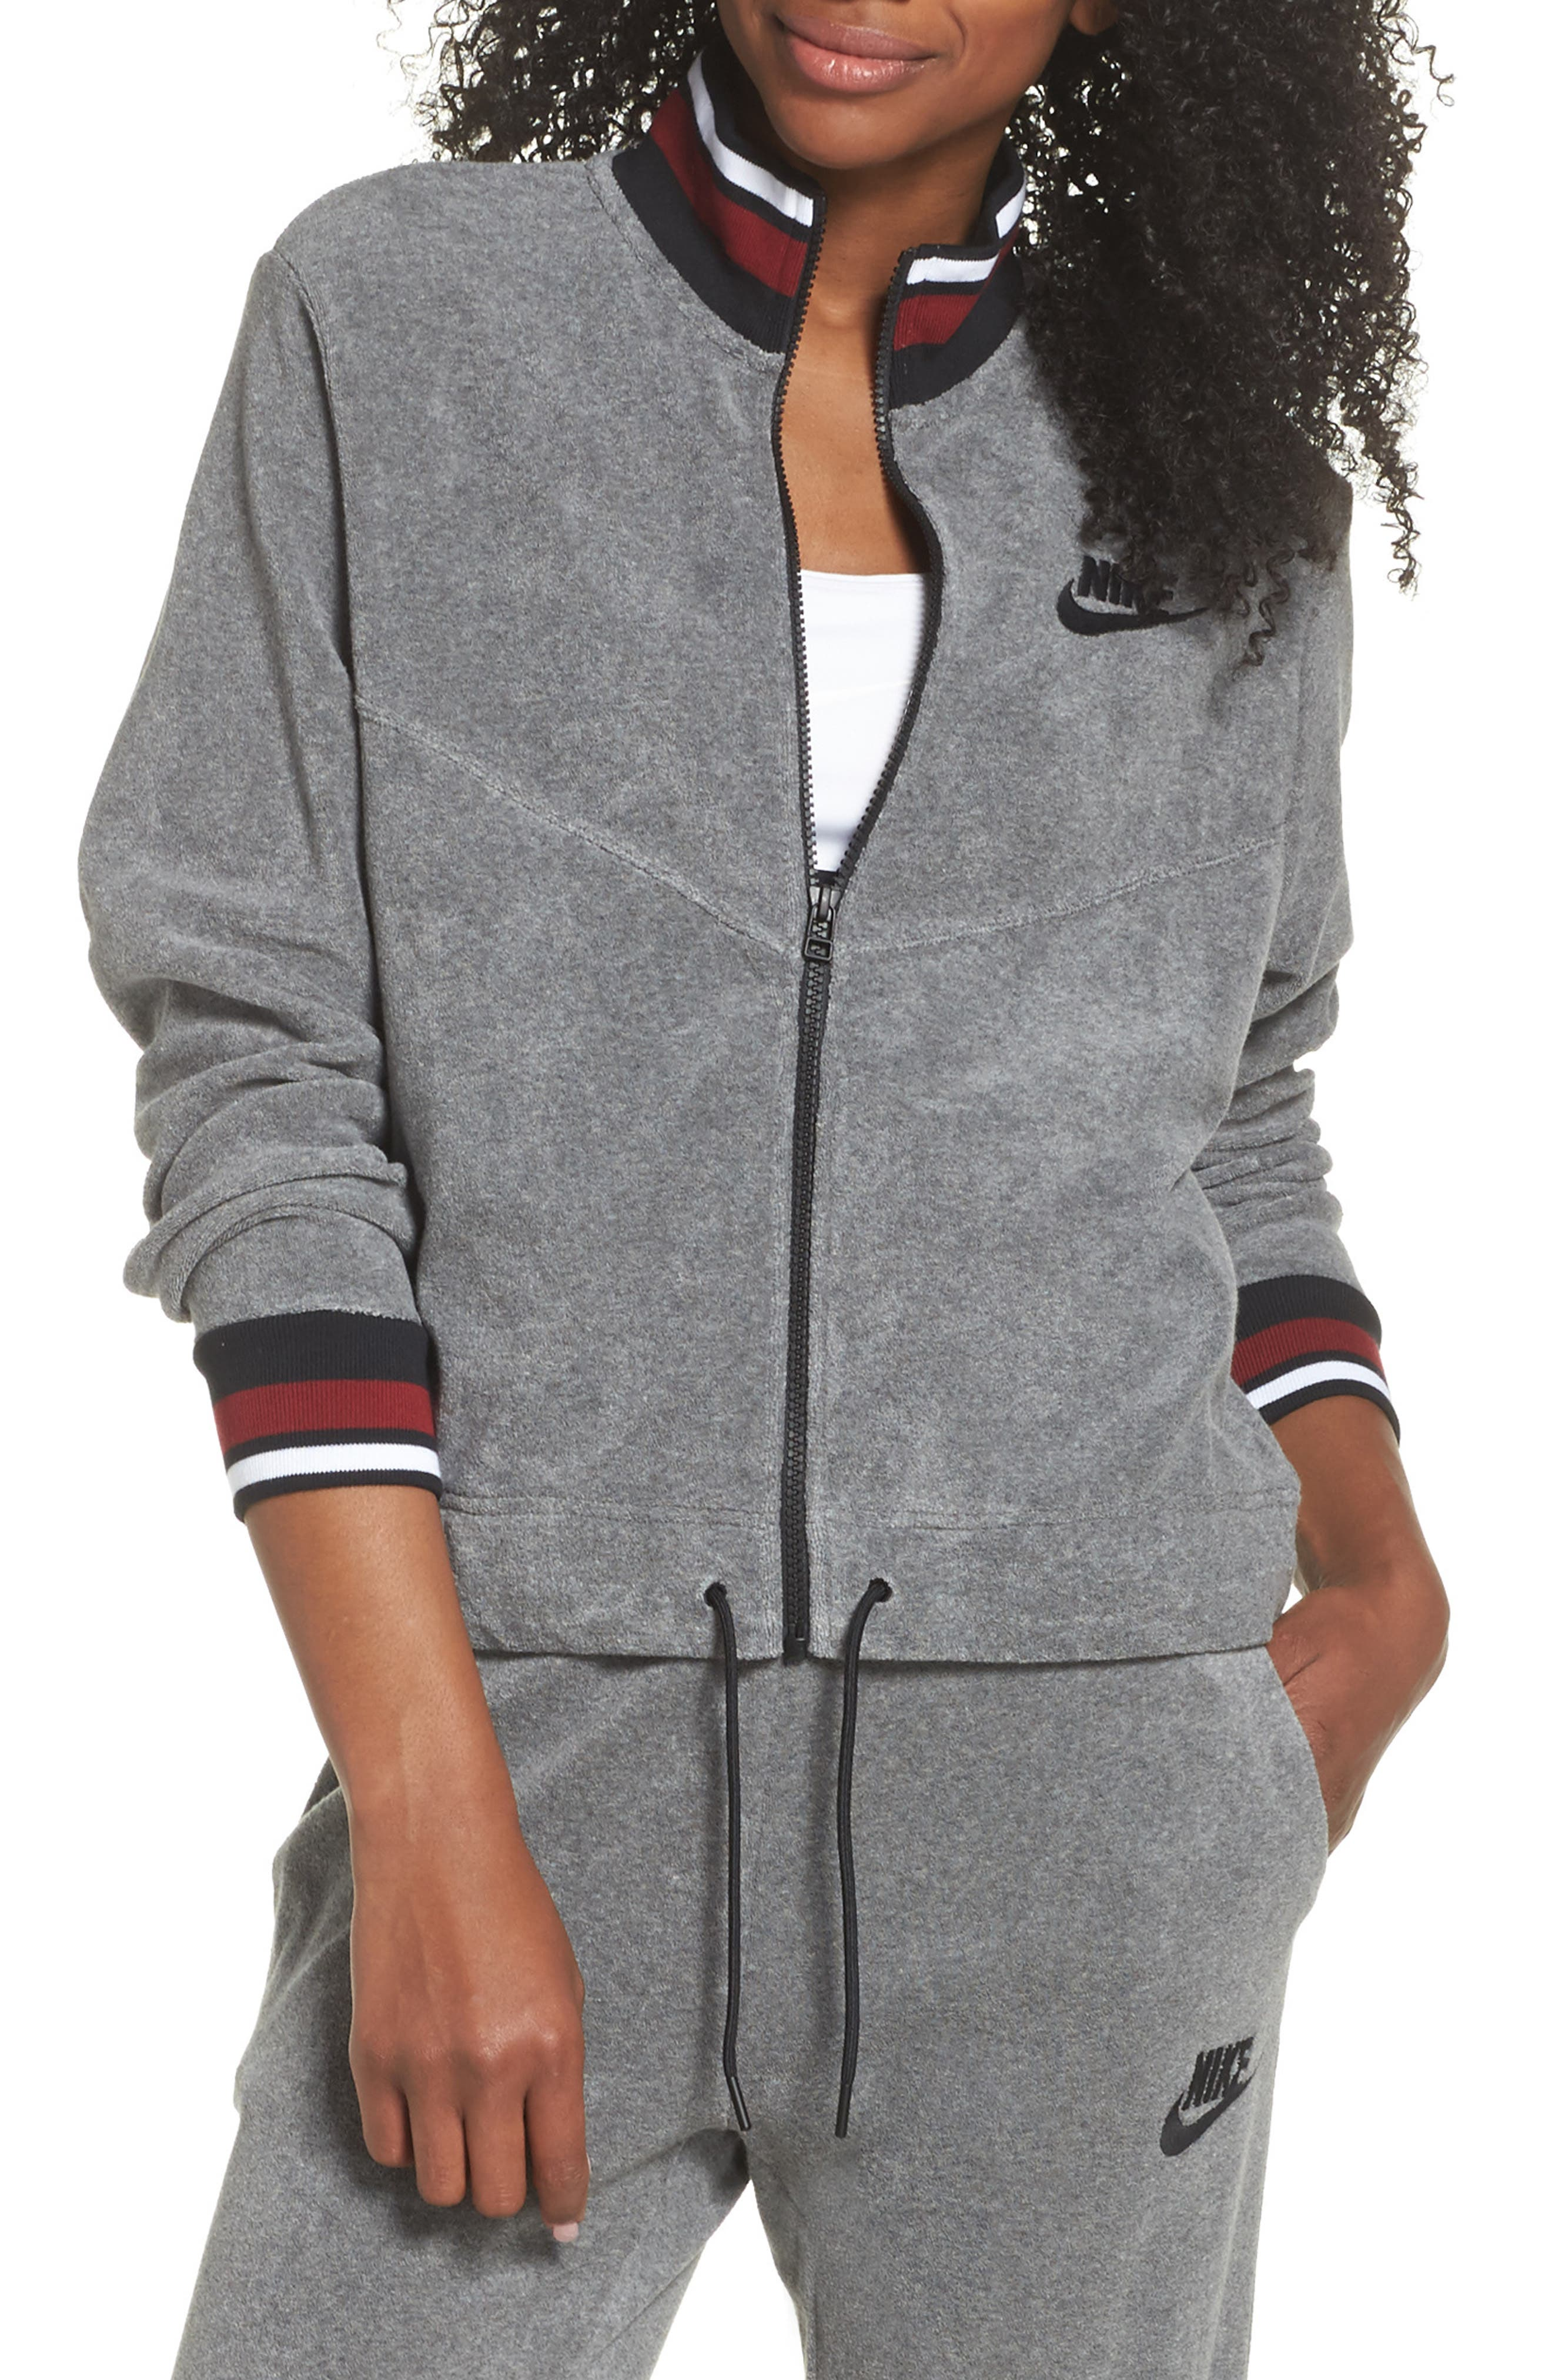 Sportswear French Terry Jacket,                             Main thumbnail 1, color,                             Heather/ Anthracite/ Team Red